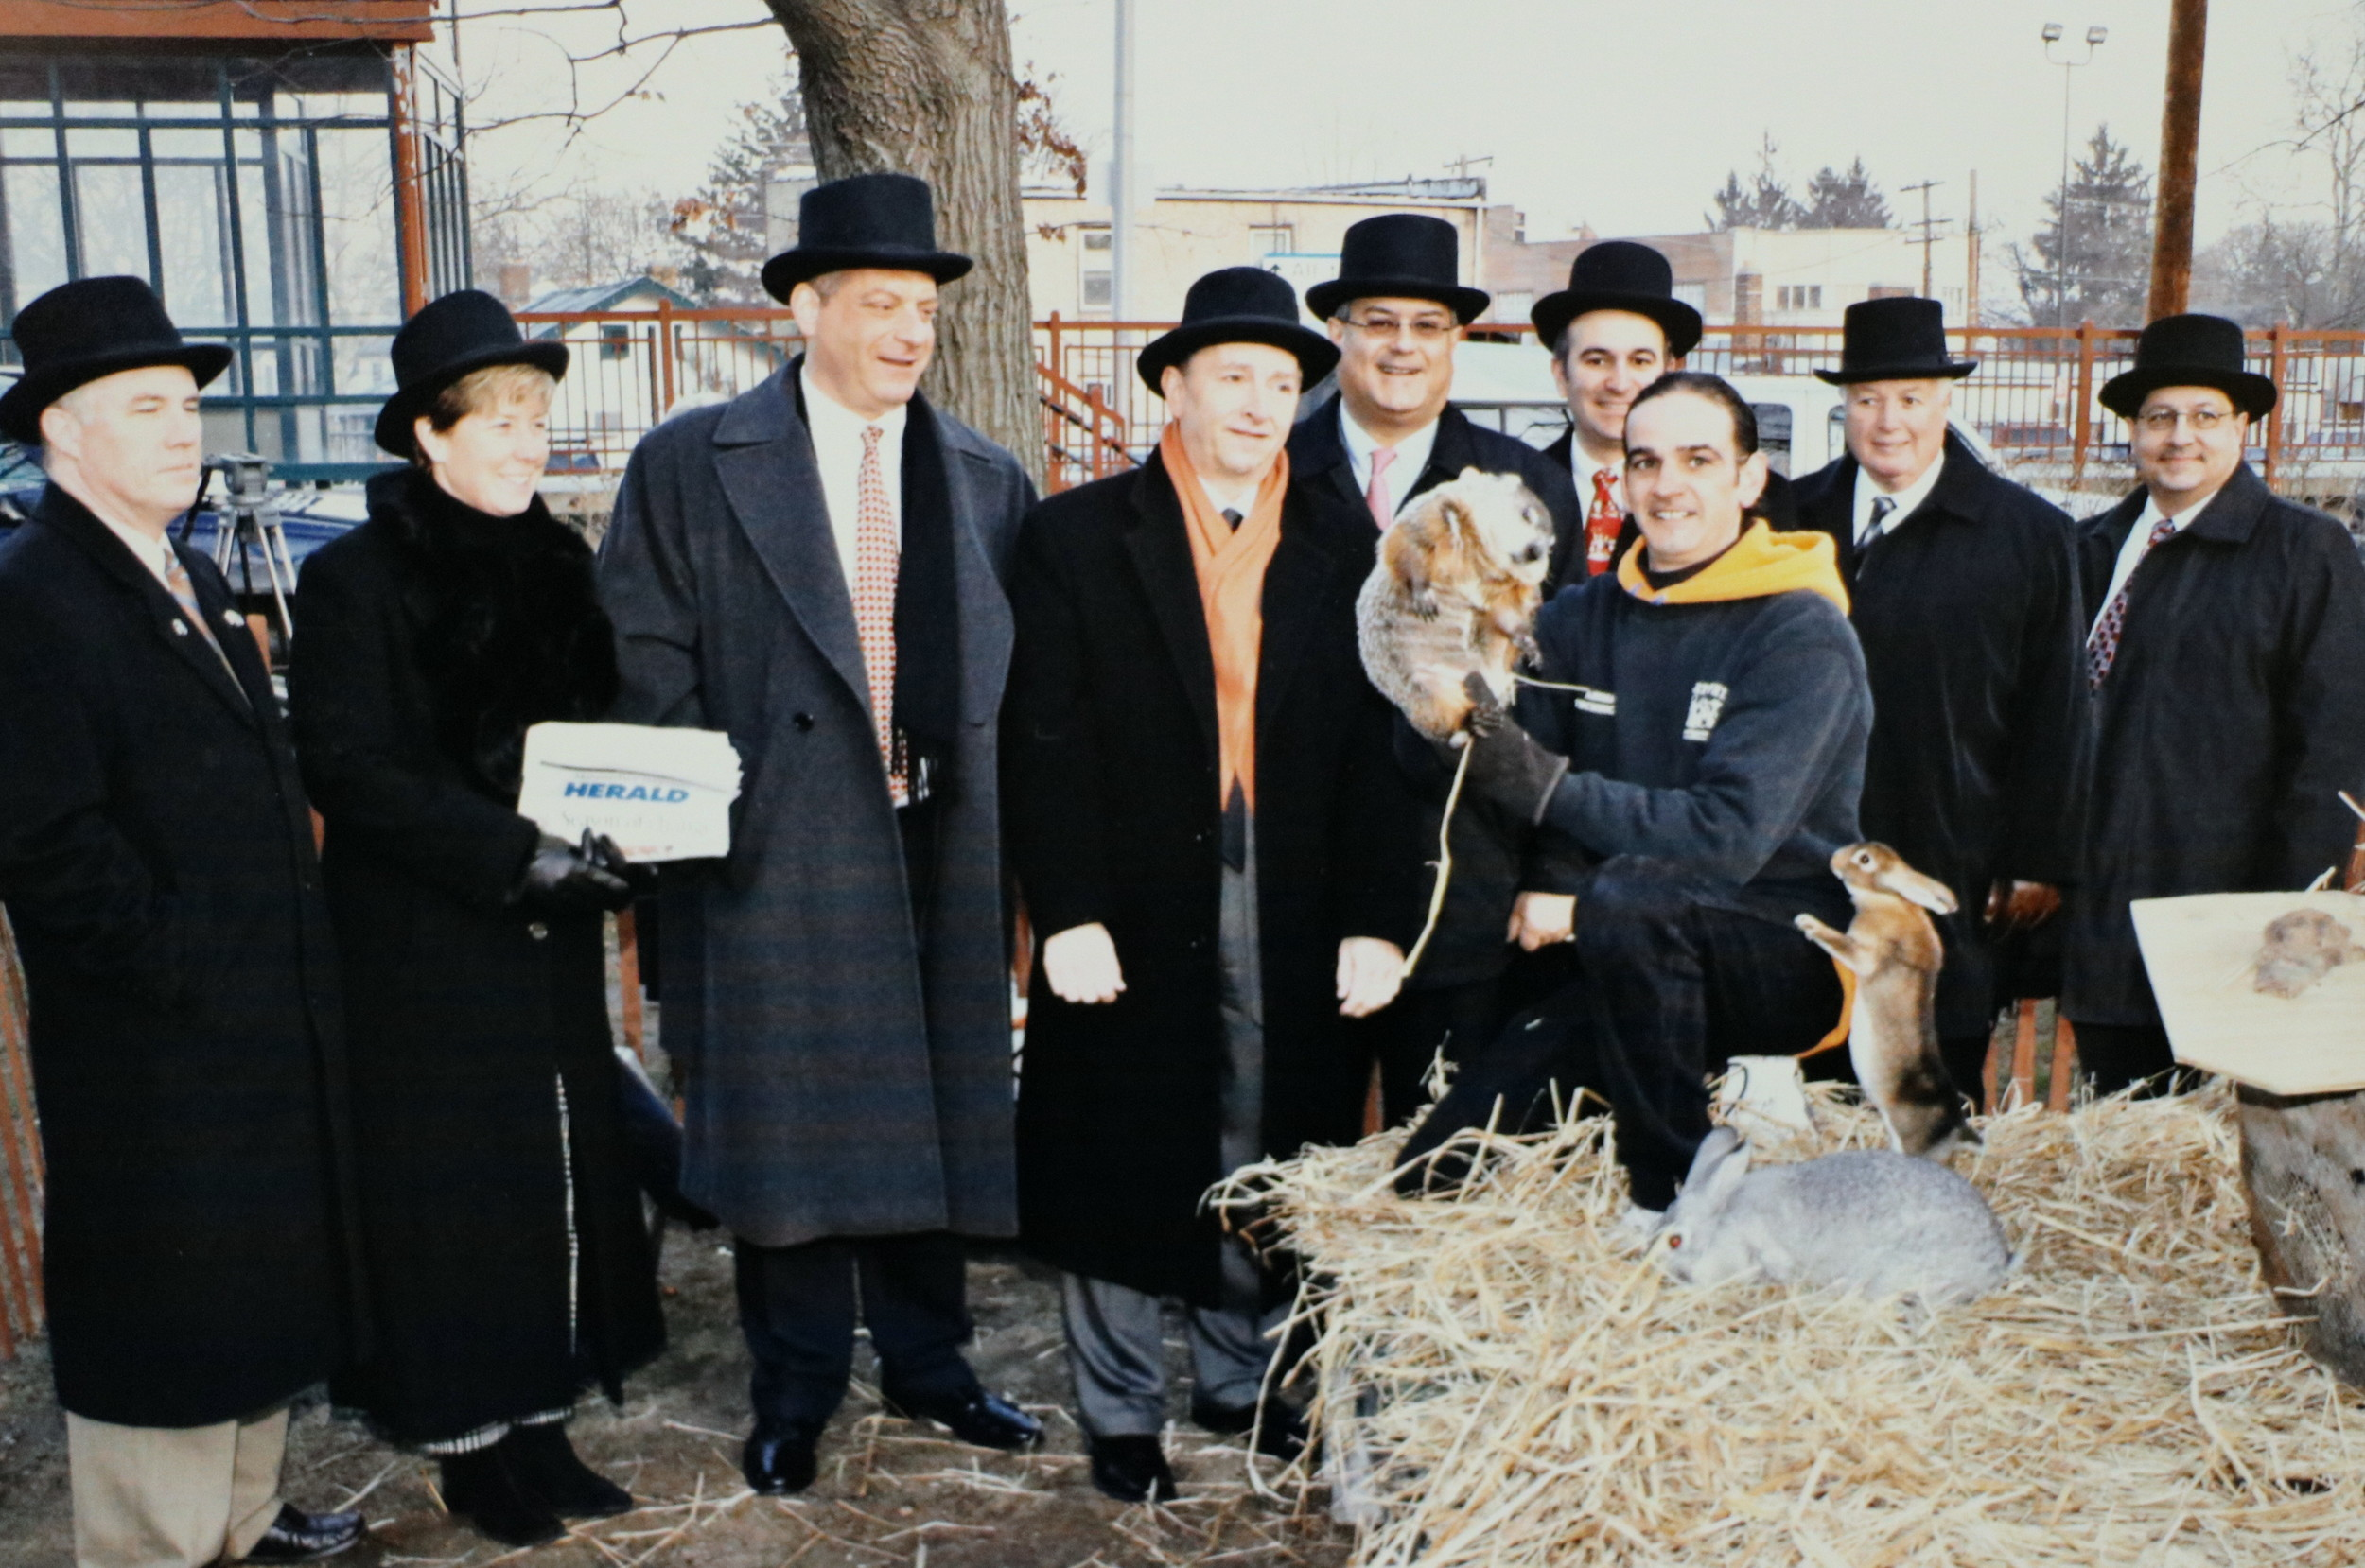 Groundhog Day 2004 in Malverne. From left: past village Trustee William Malone; current Mayor Patti Ann McDonald; Herald Publisher Cliff Richner; past Mayor Anthony Panzarella; current Town Supervisor Anthony Santino; past Deputy Mayor James Callahan; Mel handler  Andre Ricaud; past Village Justice James W. Dougherty; and past Lynbrook trustee David Penzo.